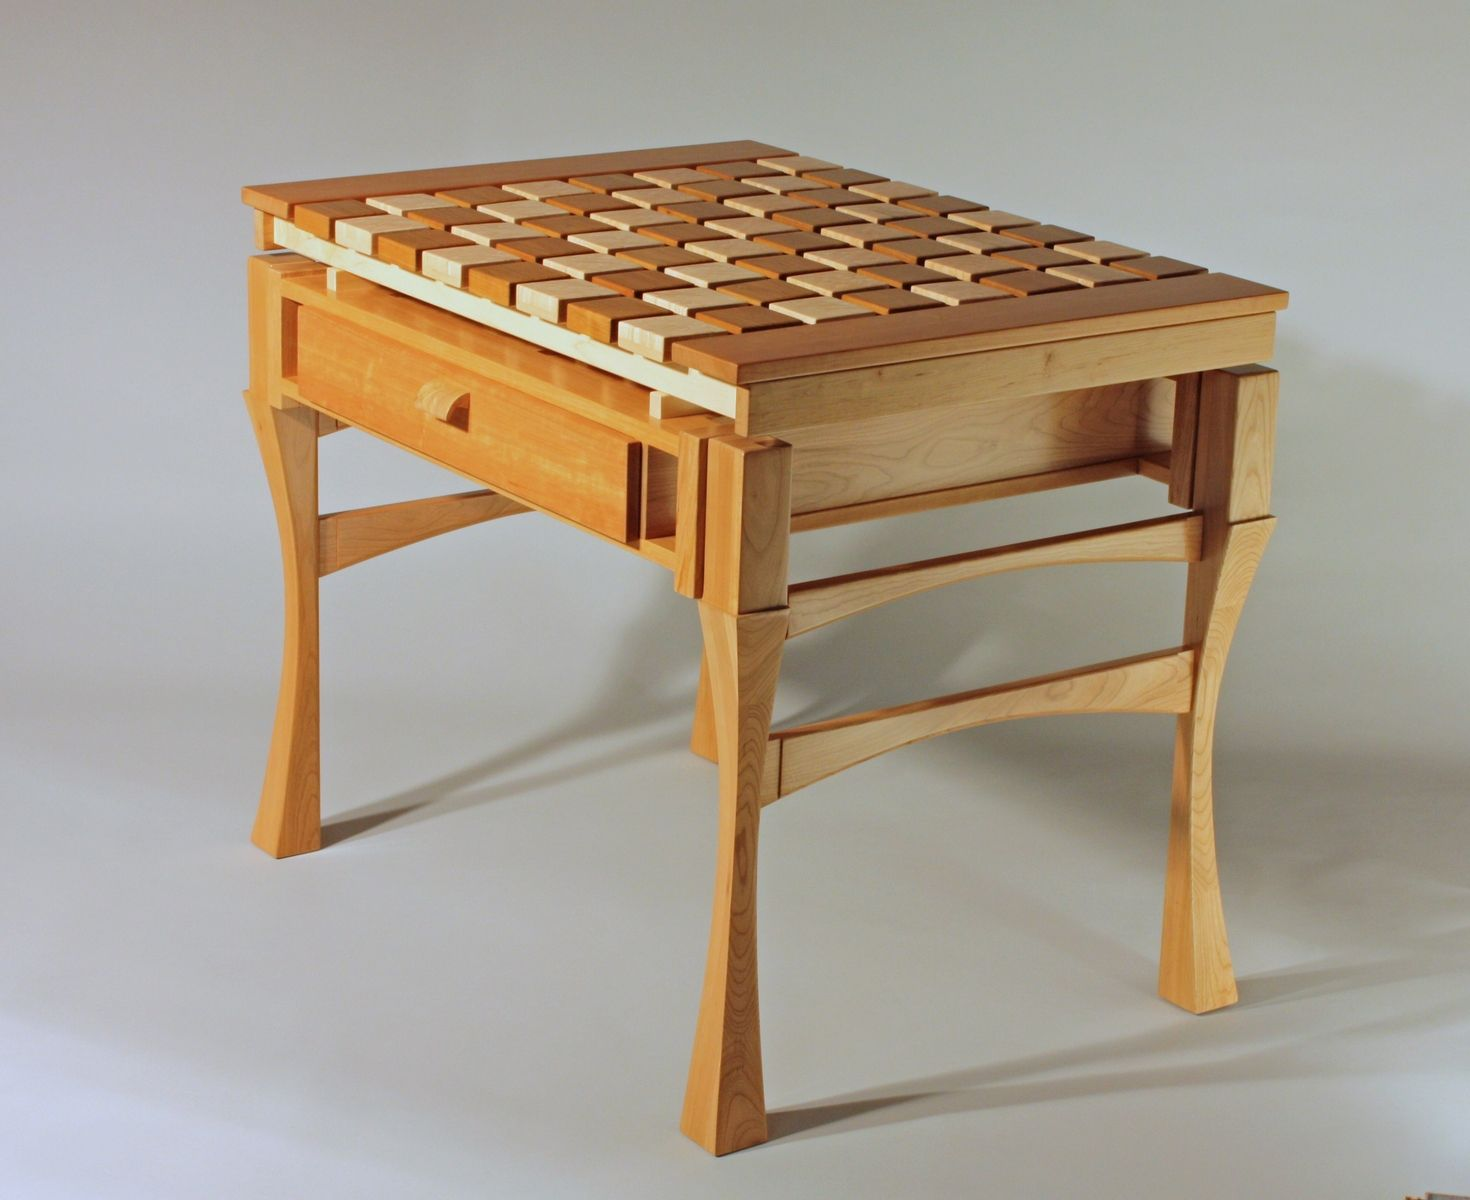 Handmade Moated Chess Table By Joiner Of Fine Furniture